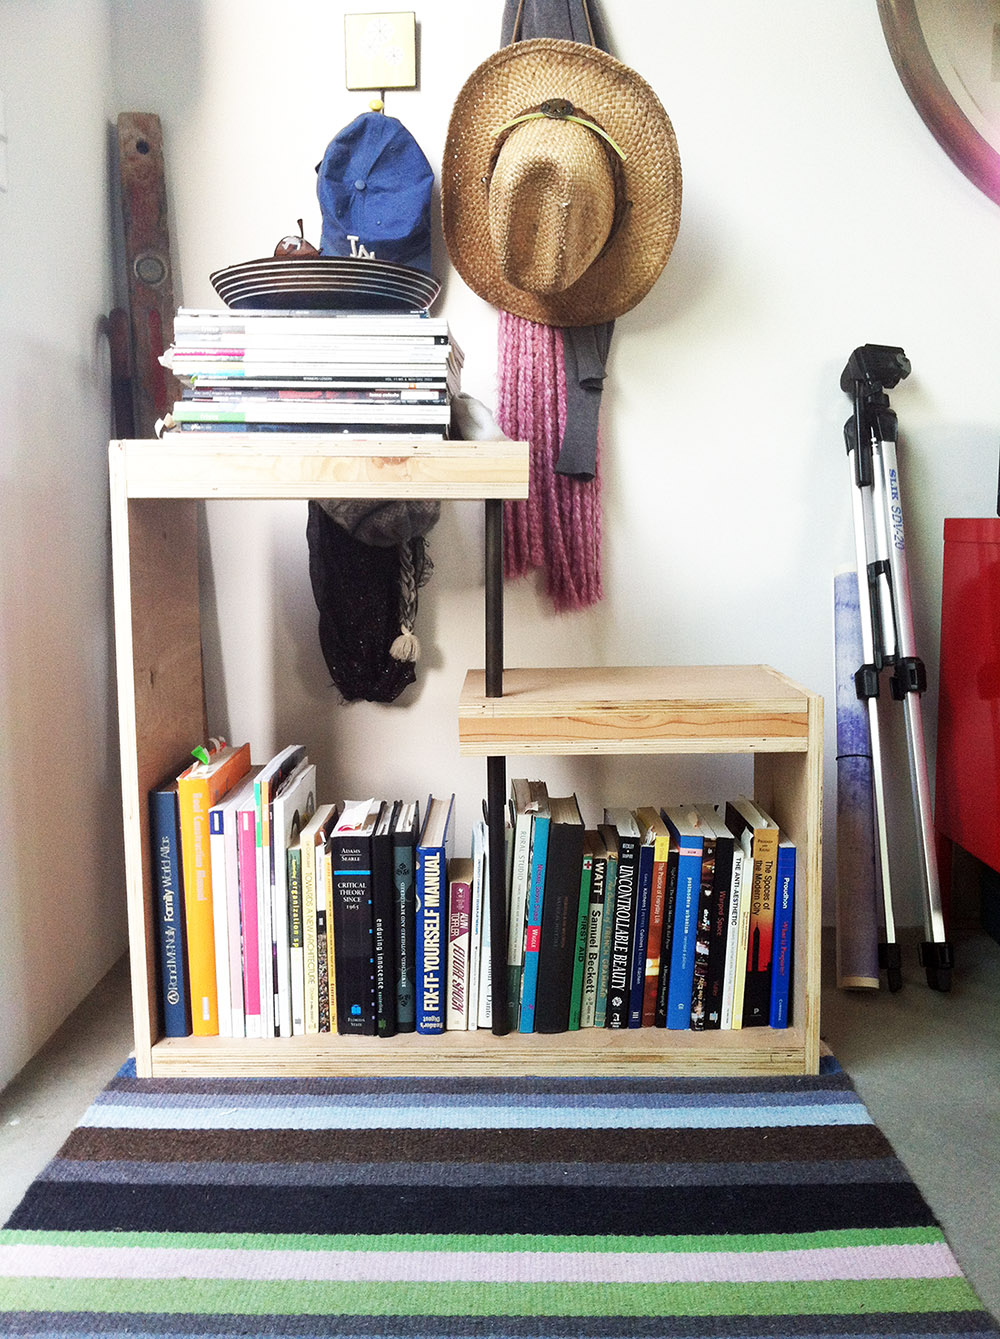 mud room shelf.jpg